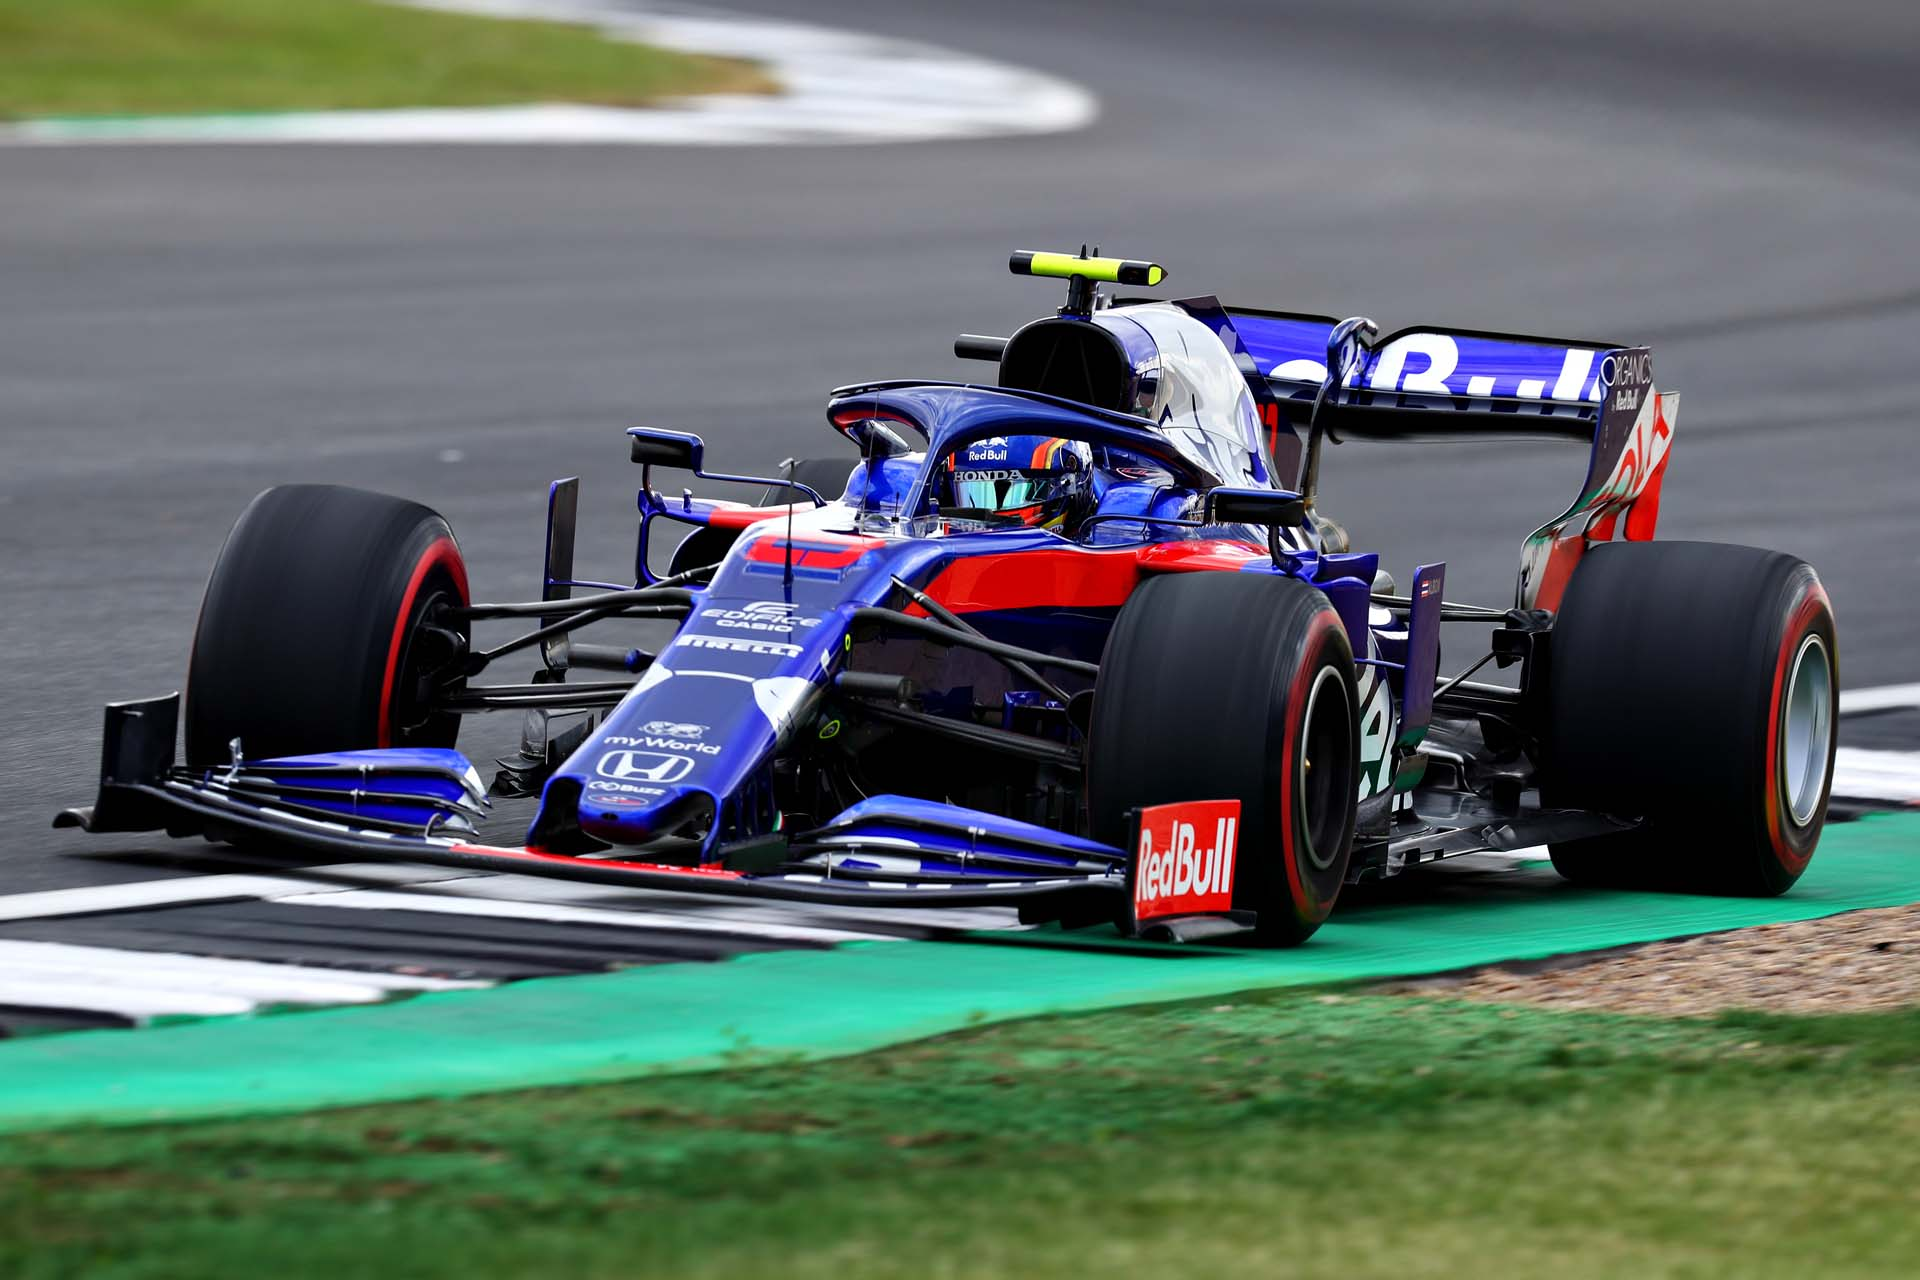 NORTHAMPTON, ENGLAND - JULY 12: Alexander Albon of Thailand driving the (23) Scuderia Toro Rosso STR14 Honda on track during practice for the F1 Grand Prix of Great Britain at Silverstone on July 12, 2019 in Northampton, England. (Photo by Mark Thompson/Getty Images) // Getty Images / Red Bull Content Pool  // AP-1ZX65X3XH2111 // Usage for editorial use only // Please go to www.redbullcontentpool.com for further information. //